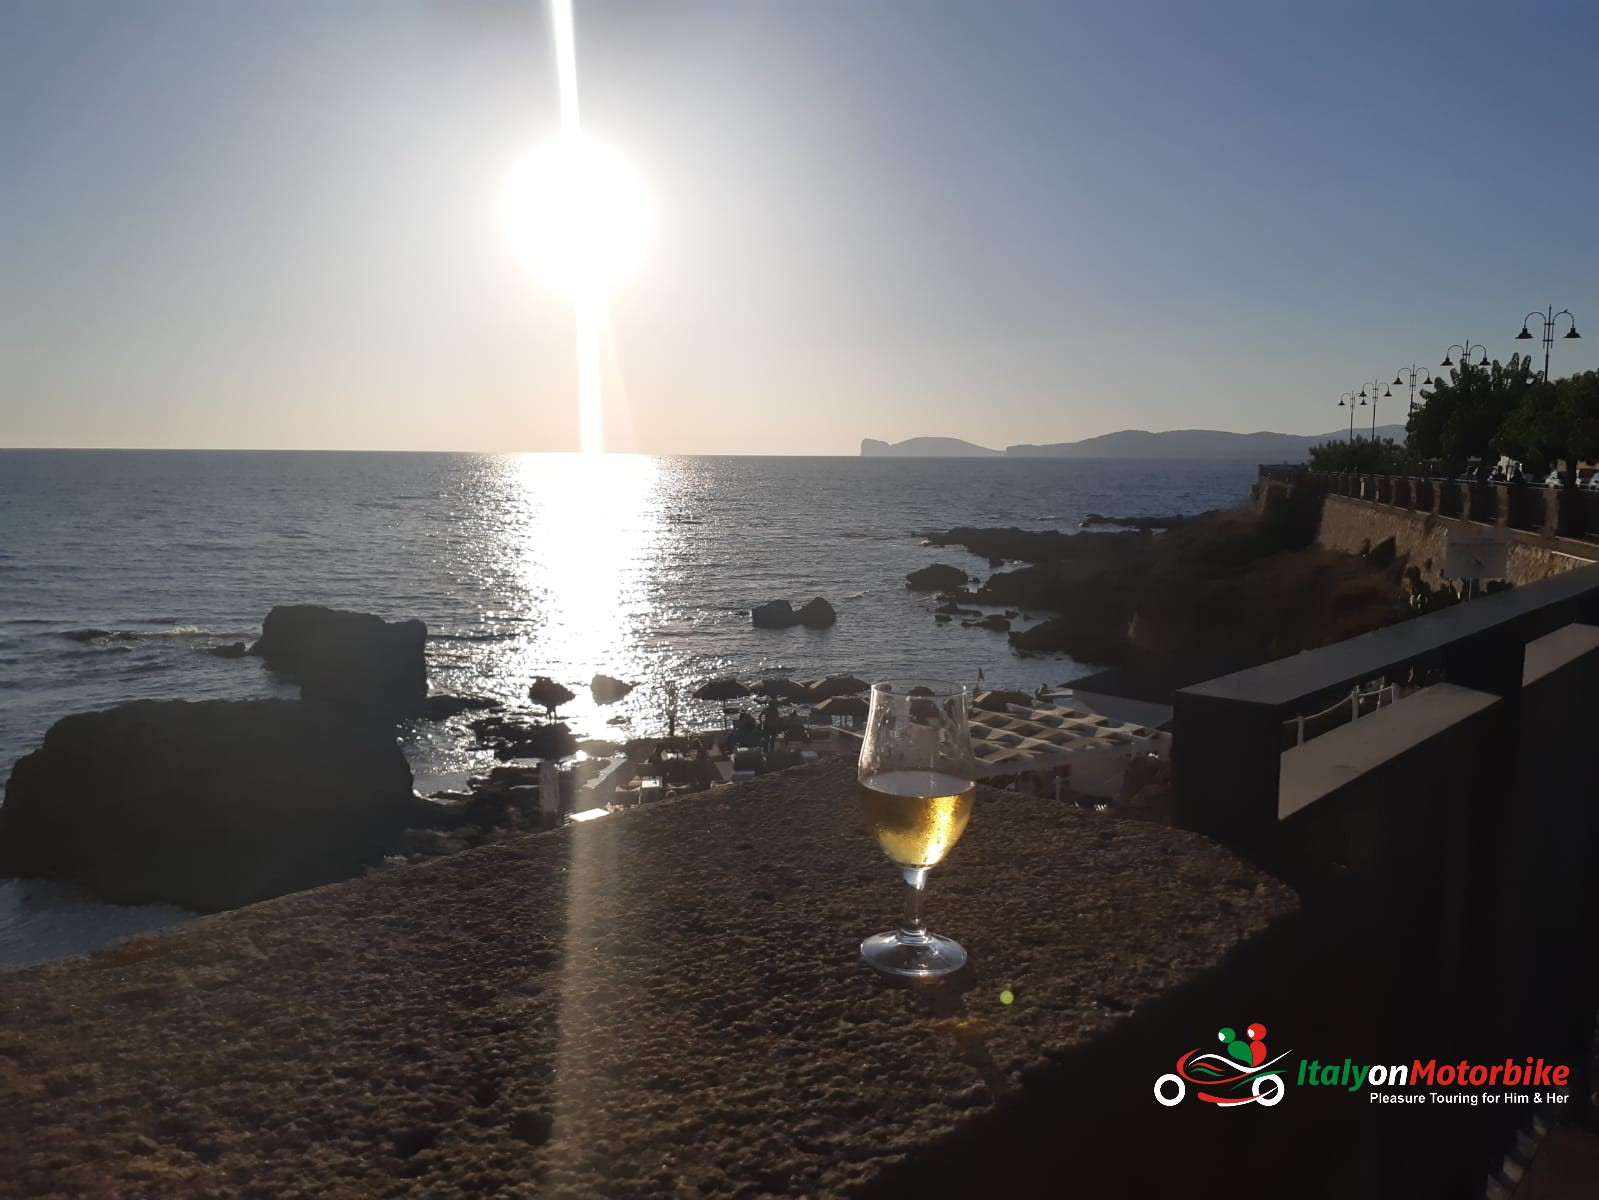 A beautiful sunset taken with a glass of white wine to end perfectly our motorcycle tour in Italy